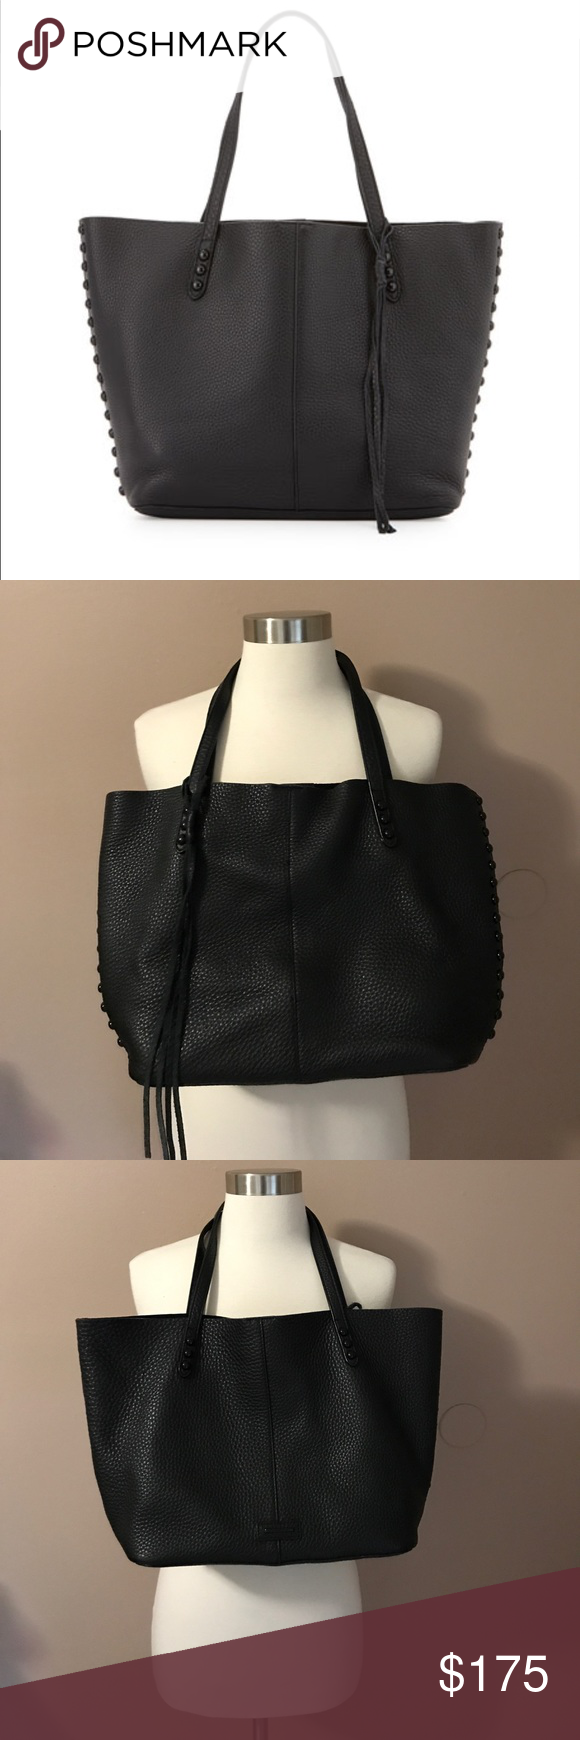 7f6a7021d Rebecca Minkoff Unlined Tote Dome Studs Made from buttery soft leather and  accentuated with black studs